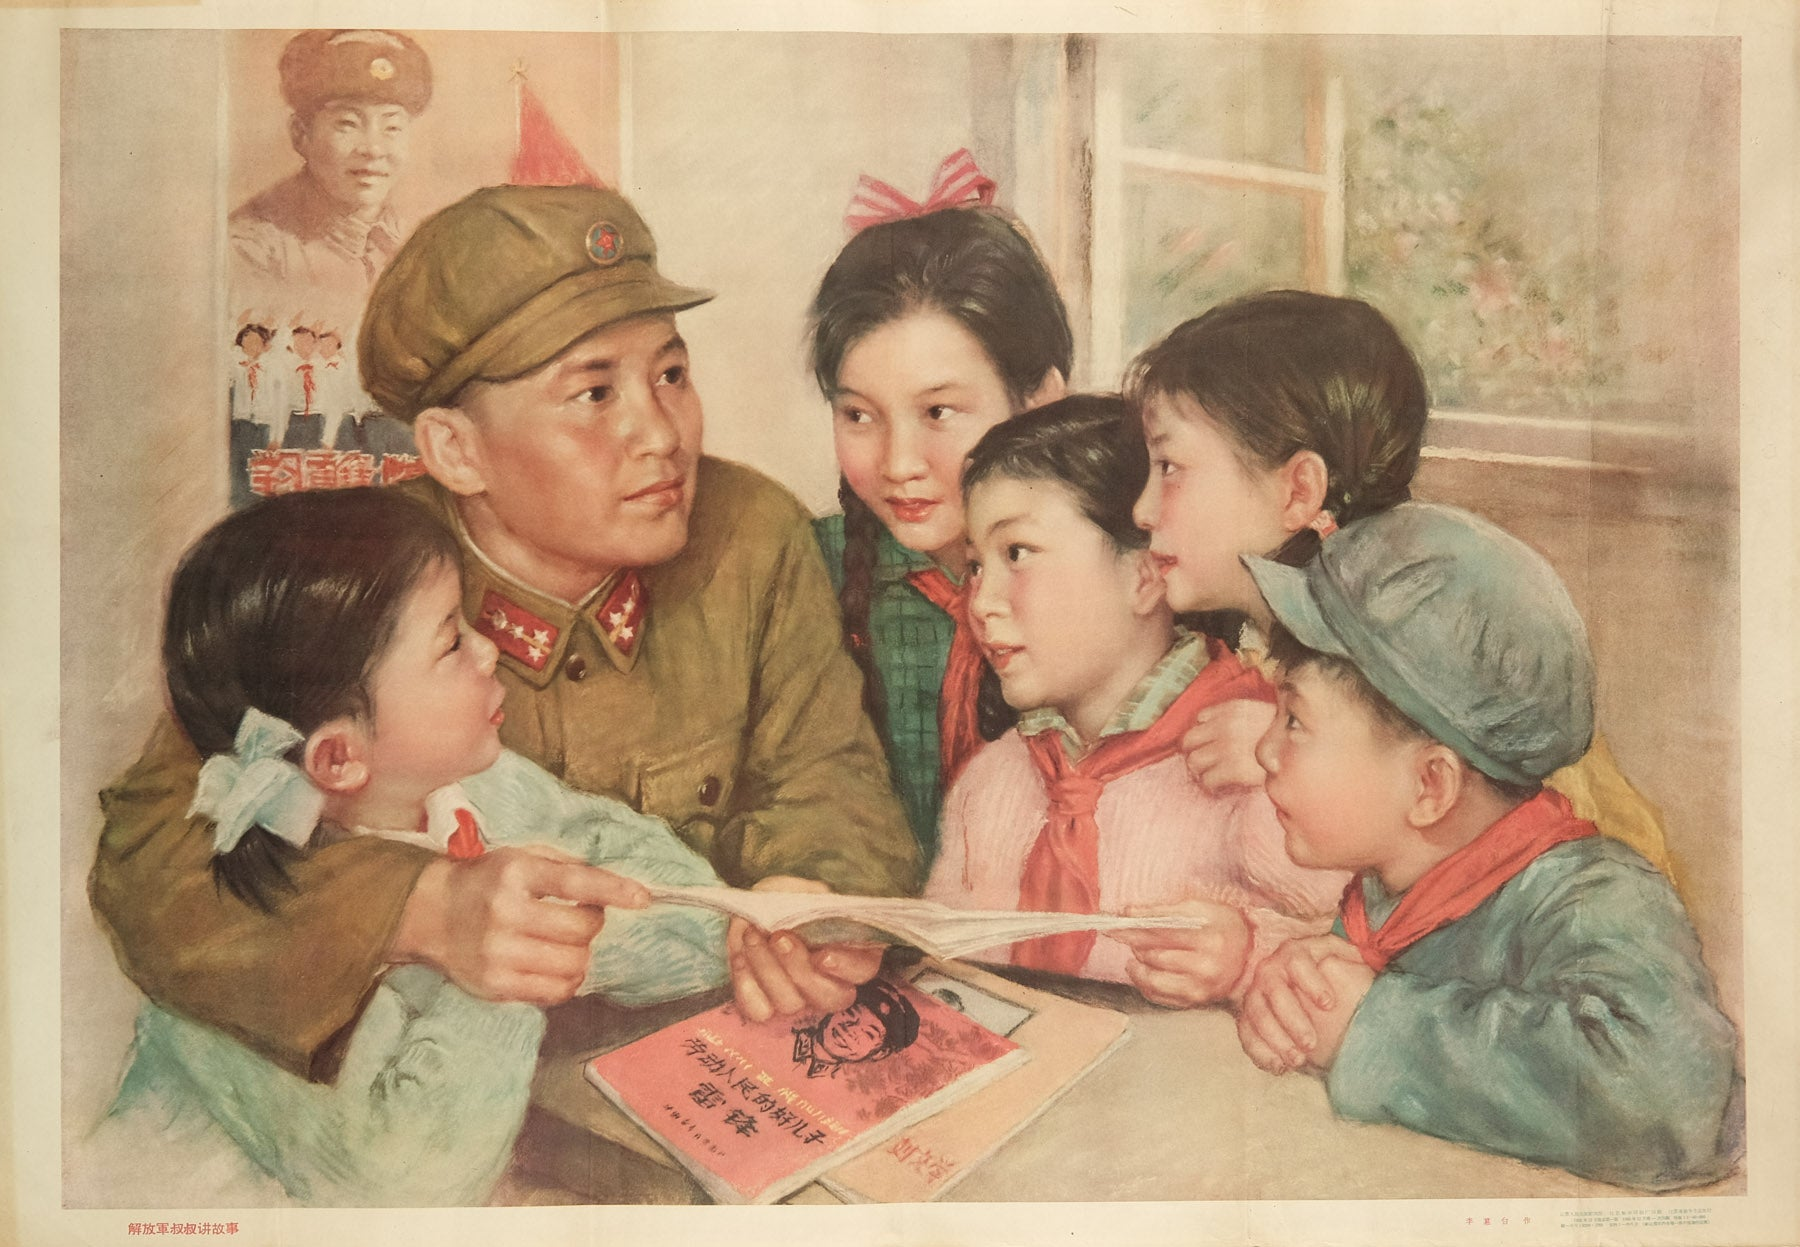 image of the original vintage 1963 Chinese communist propaganda poster titled People's Liberation Army uncle tells stories